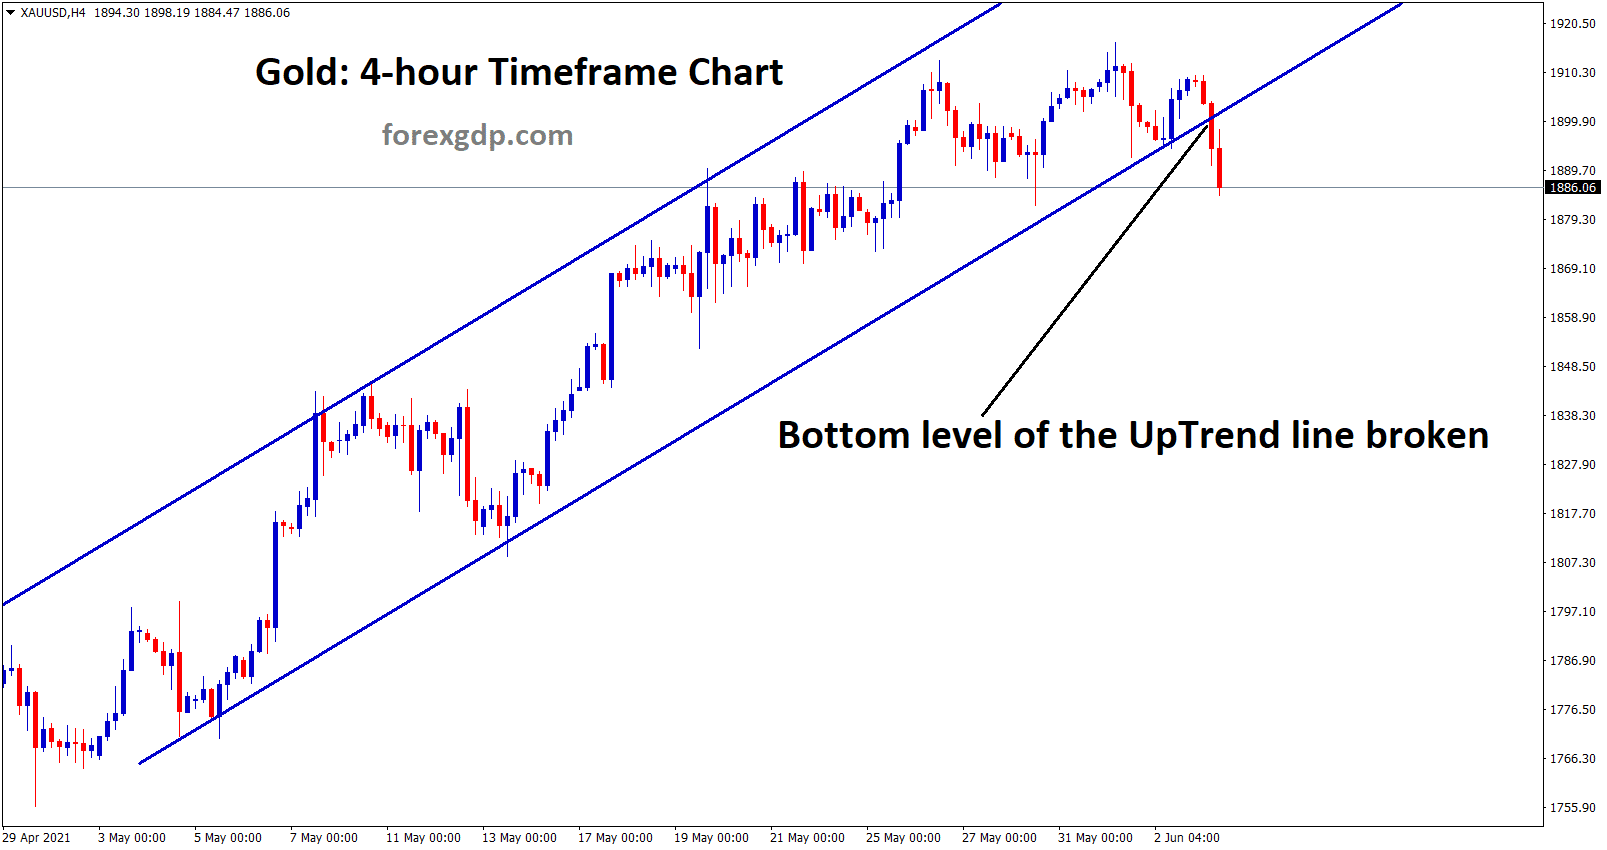 Gold has broken the bottom level of the uptrend line after a long time.